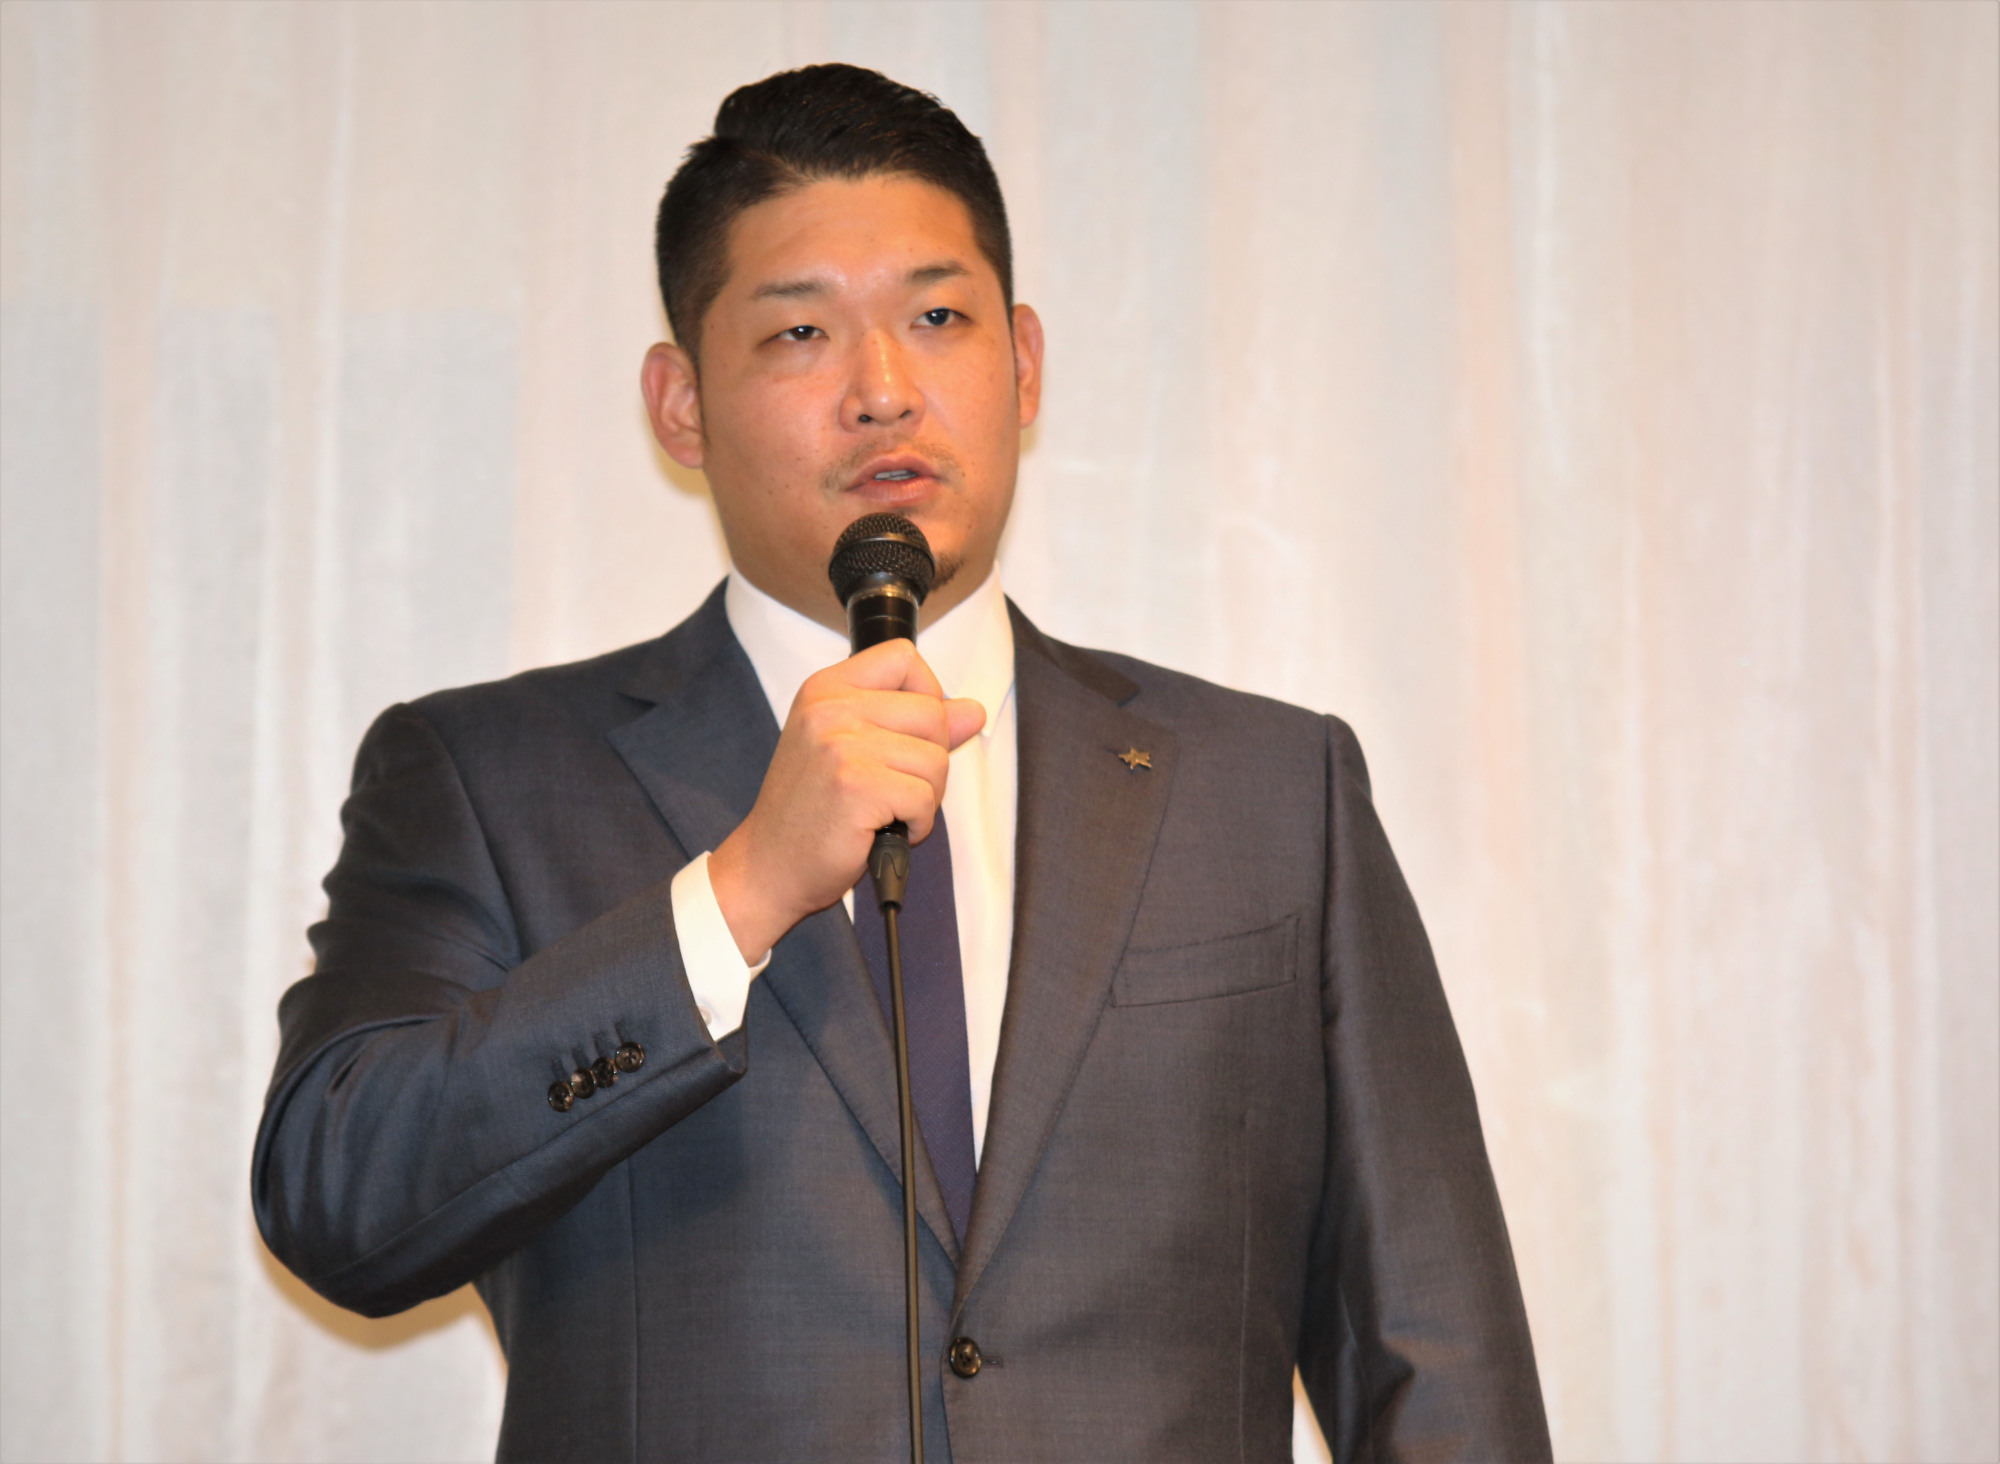 BayStars slugger Yoshitomo Tsutsugo speaks at a news conference at a Yokohama hotel on Tuesday. The 27-year-old announced his intention to go to the major leagues via the posting system this offseason.   KAZ NAGATSUKA